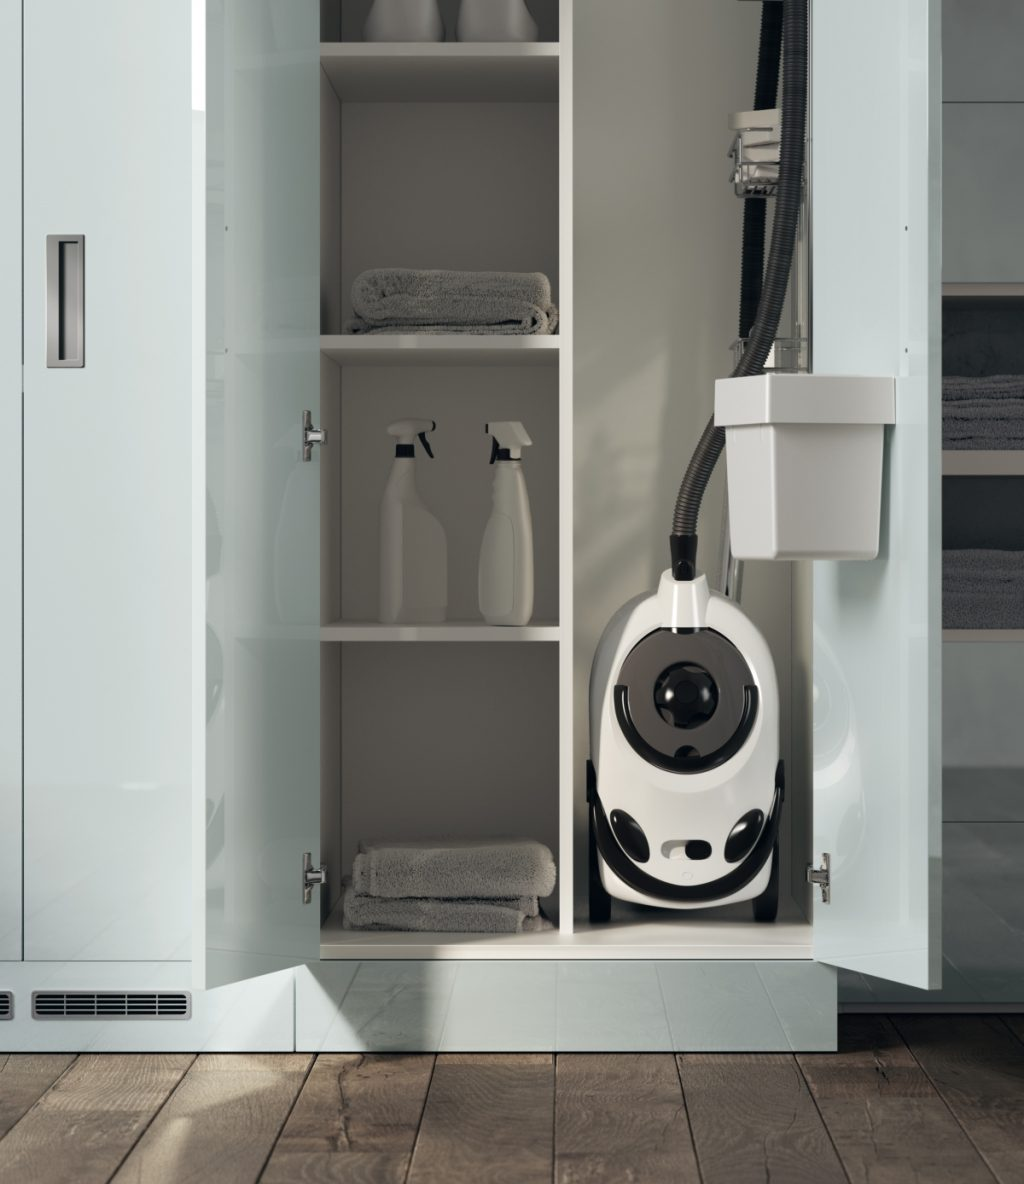 Laundry Space lo spazio lavanderia secondo Scavolini Bathrooms  Social Design Magazine